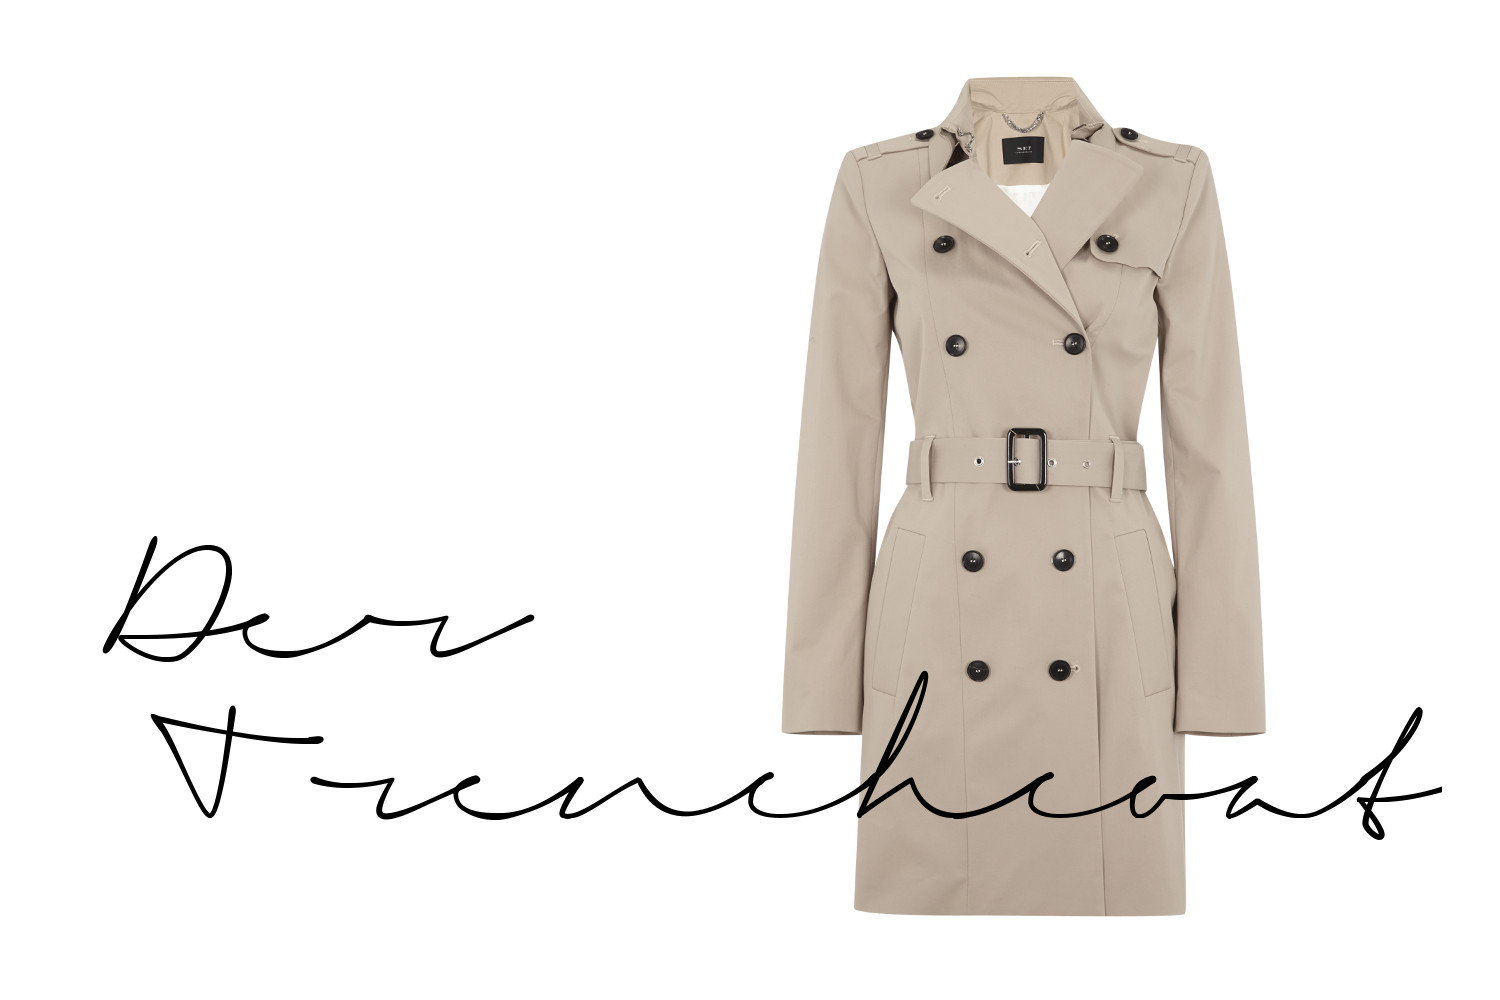 bezauberndenana-fashionblog-mantel-guide-trenchcoat